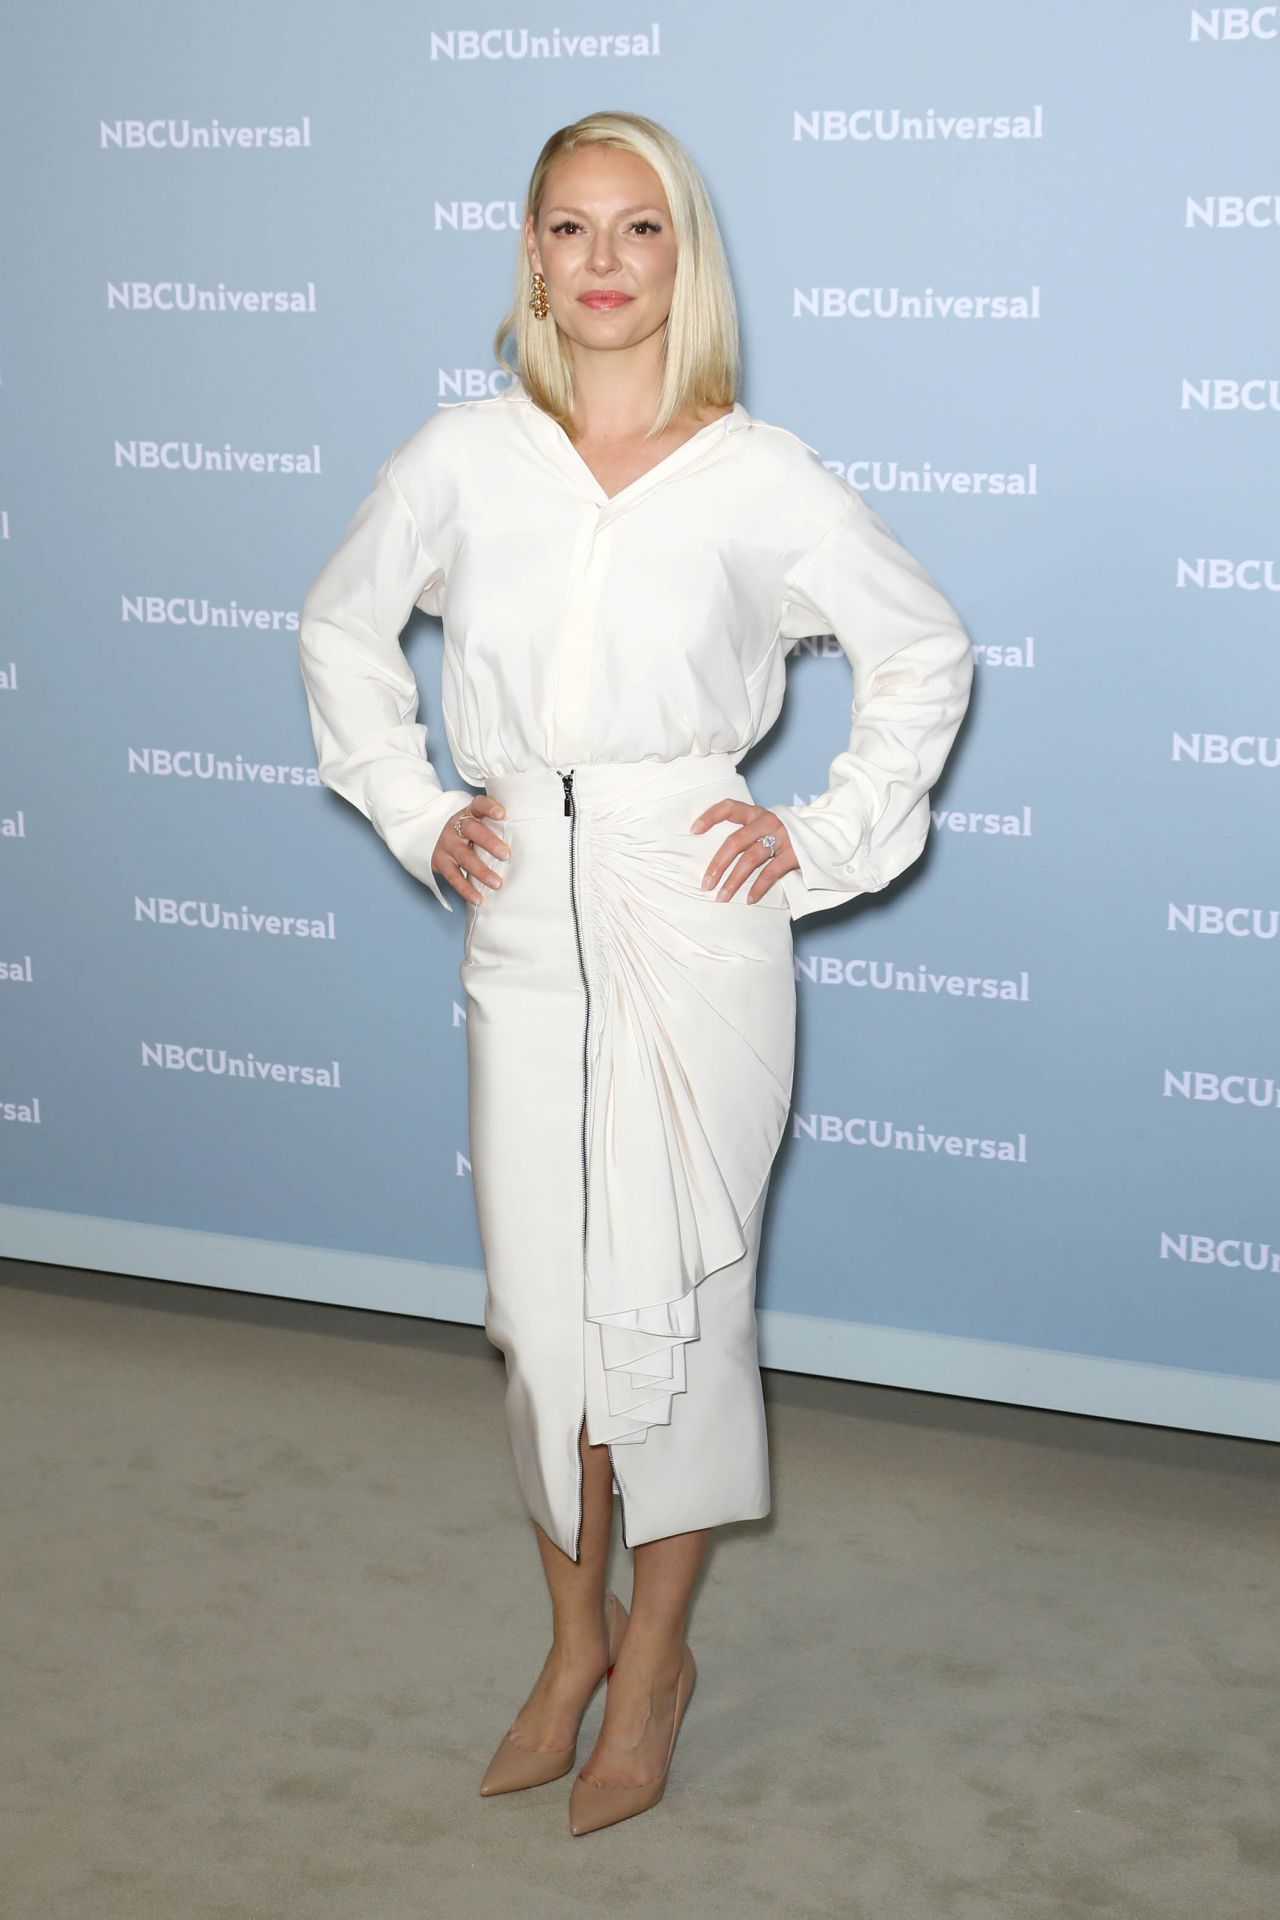 Katherine Heigl 2018 Nbcuniversal Upfront In Nyc